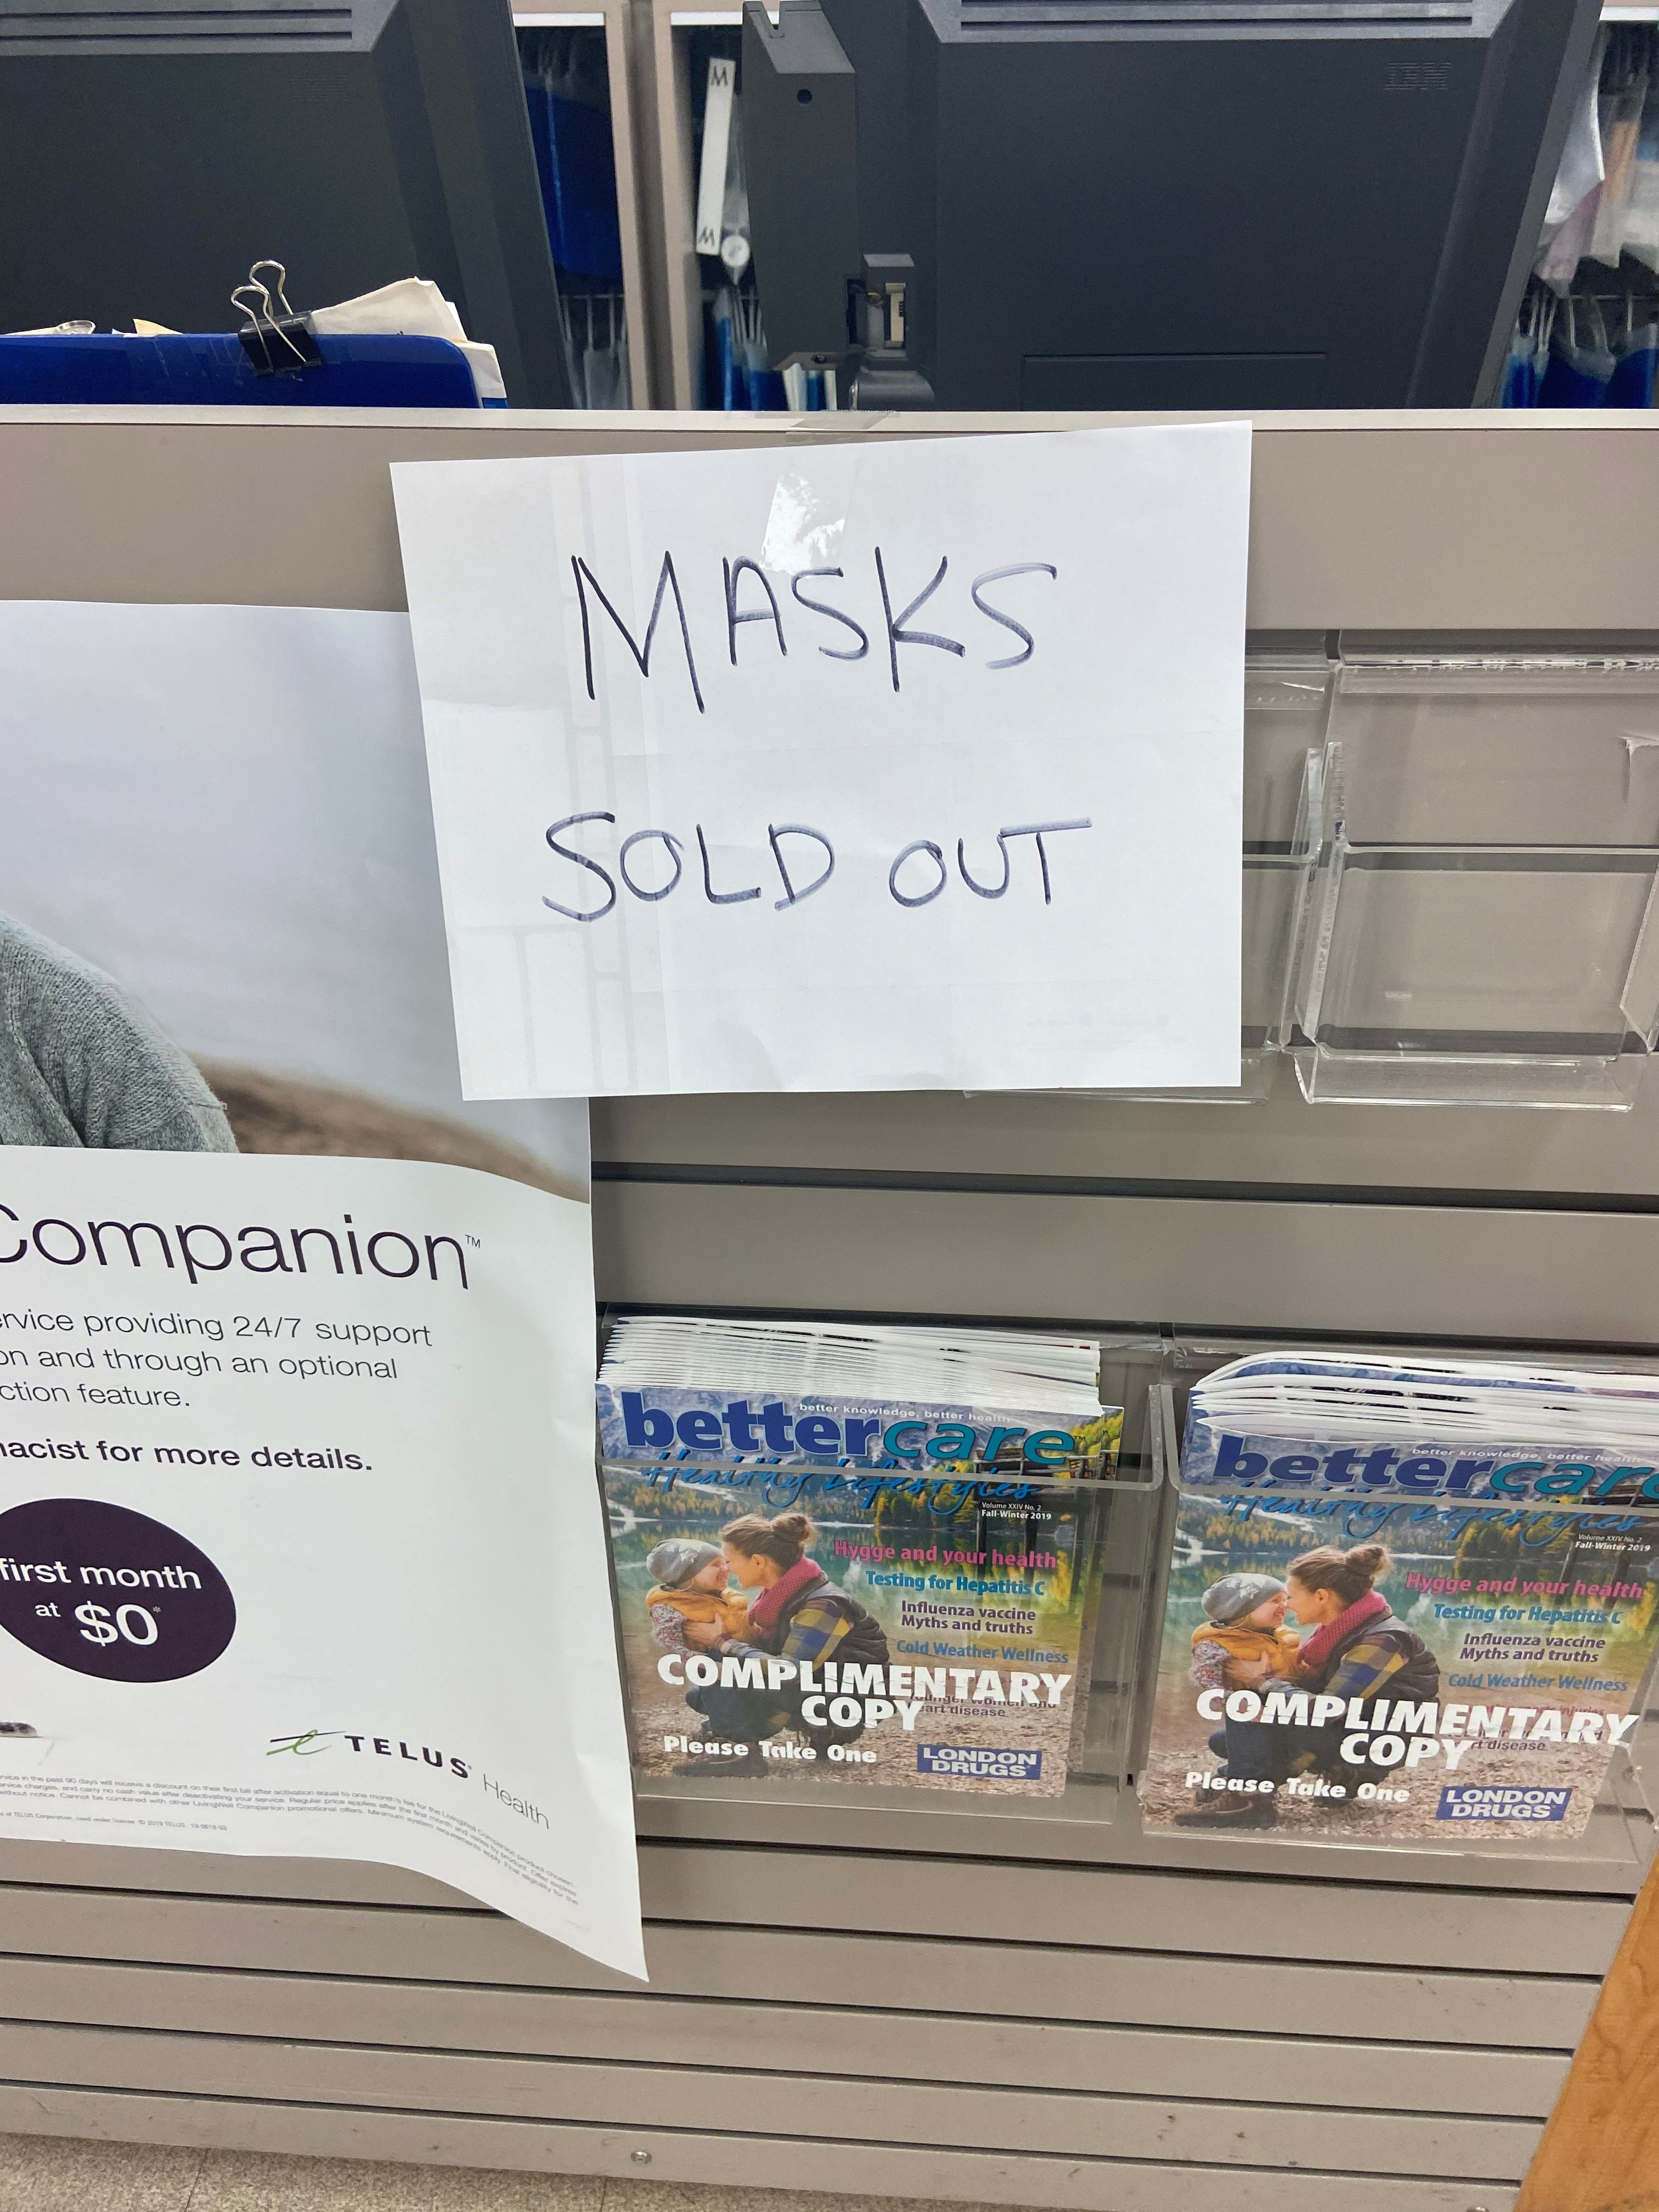 Pharmacies Of Surgical Out Masks Sell Vancouver Metro Around Face